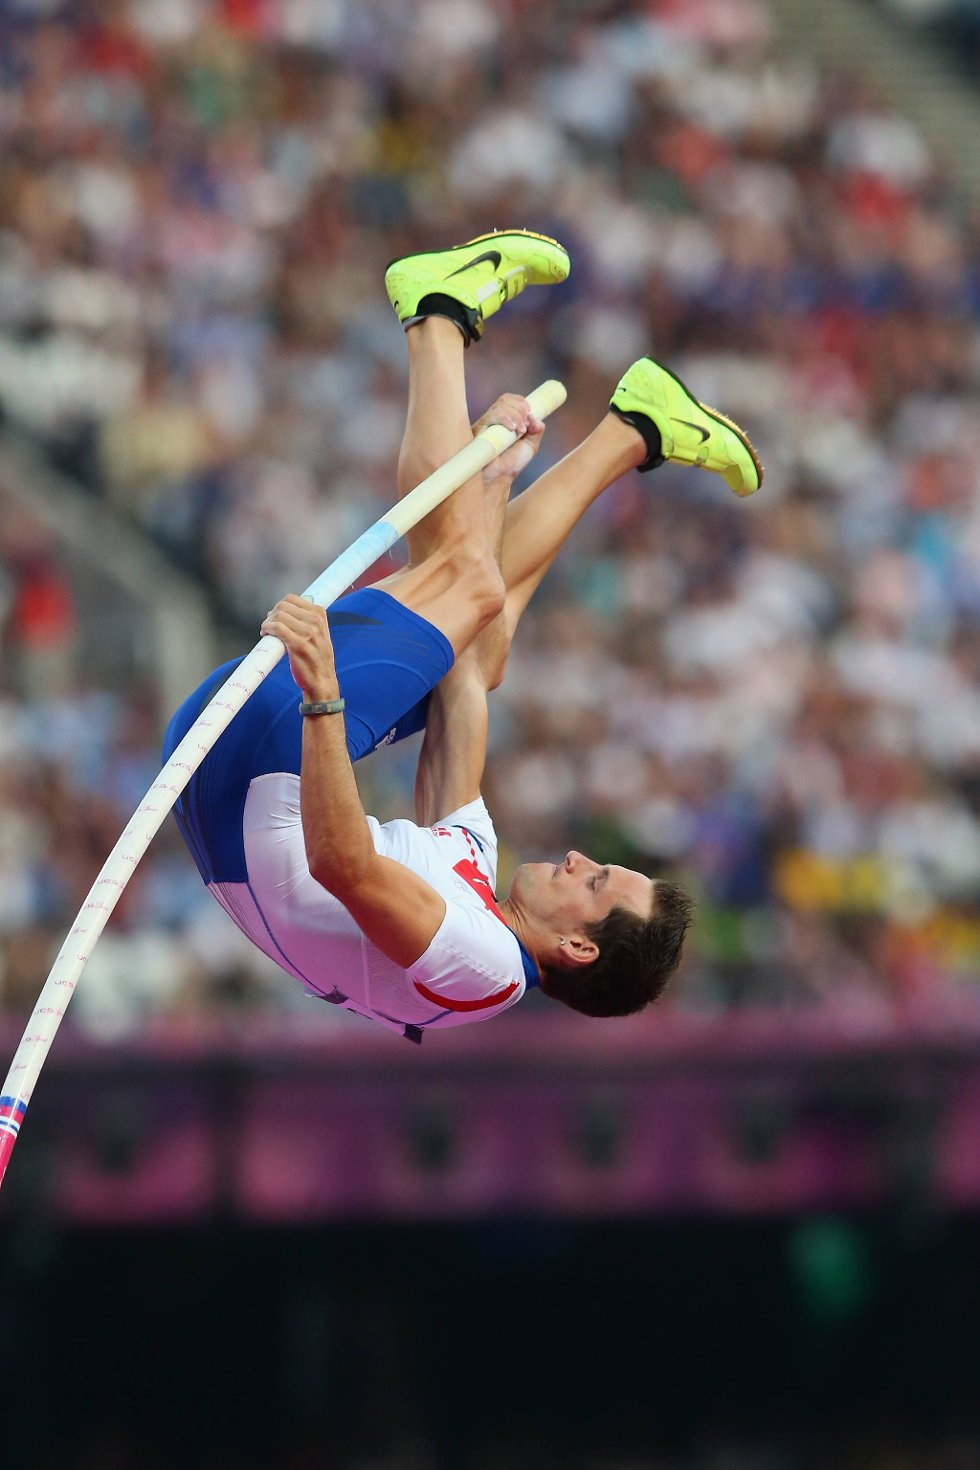 Den franske europamesteren Renaud Lavillenie i aksjon i stavfinalen. (Foto: Alex Livesey, Getty Images/All Over Press/ANB)